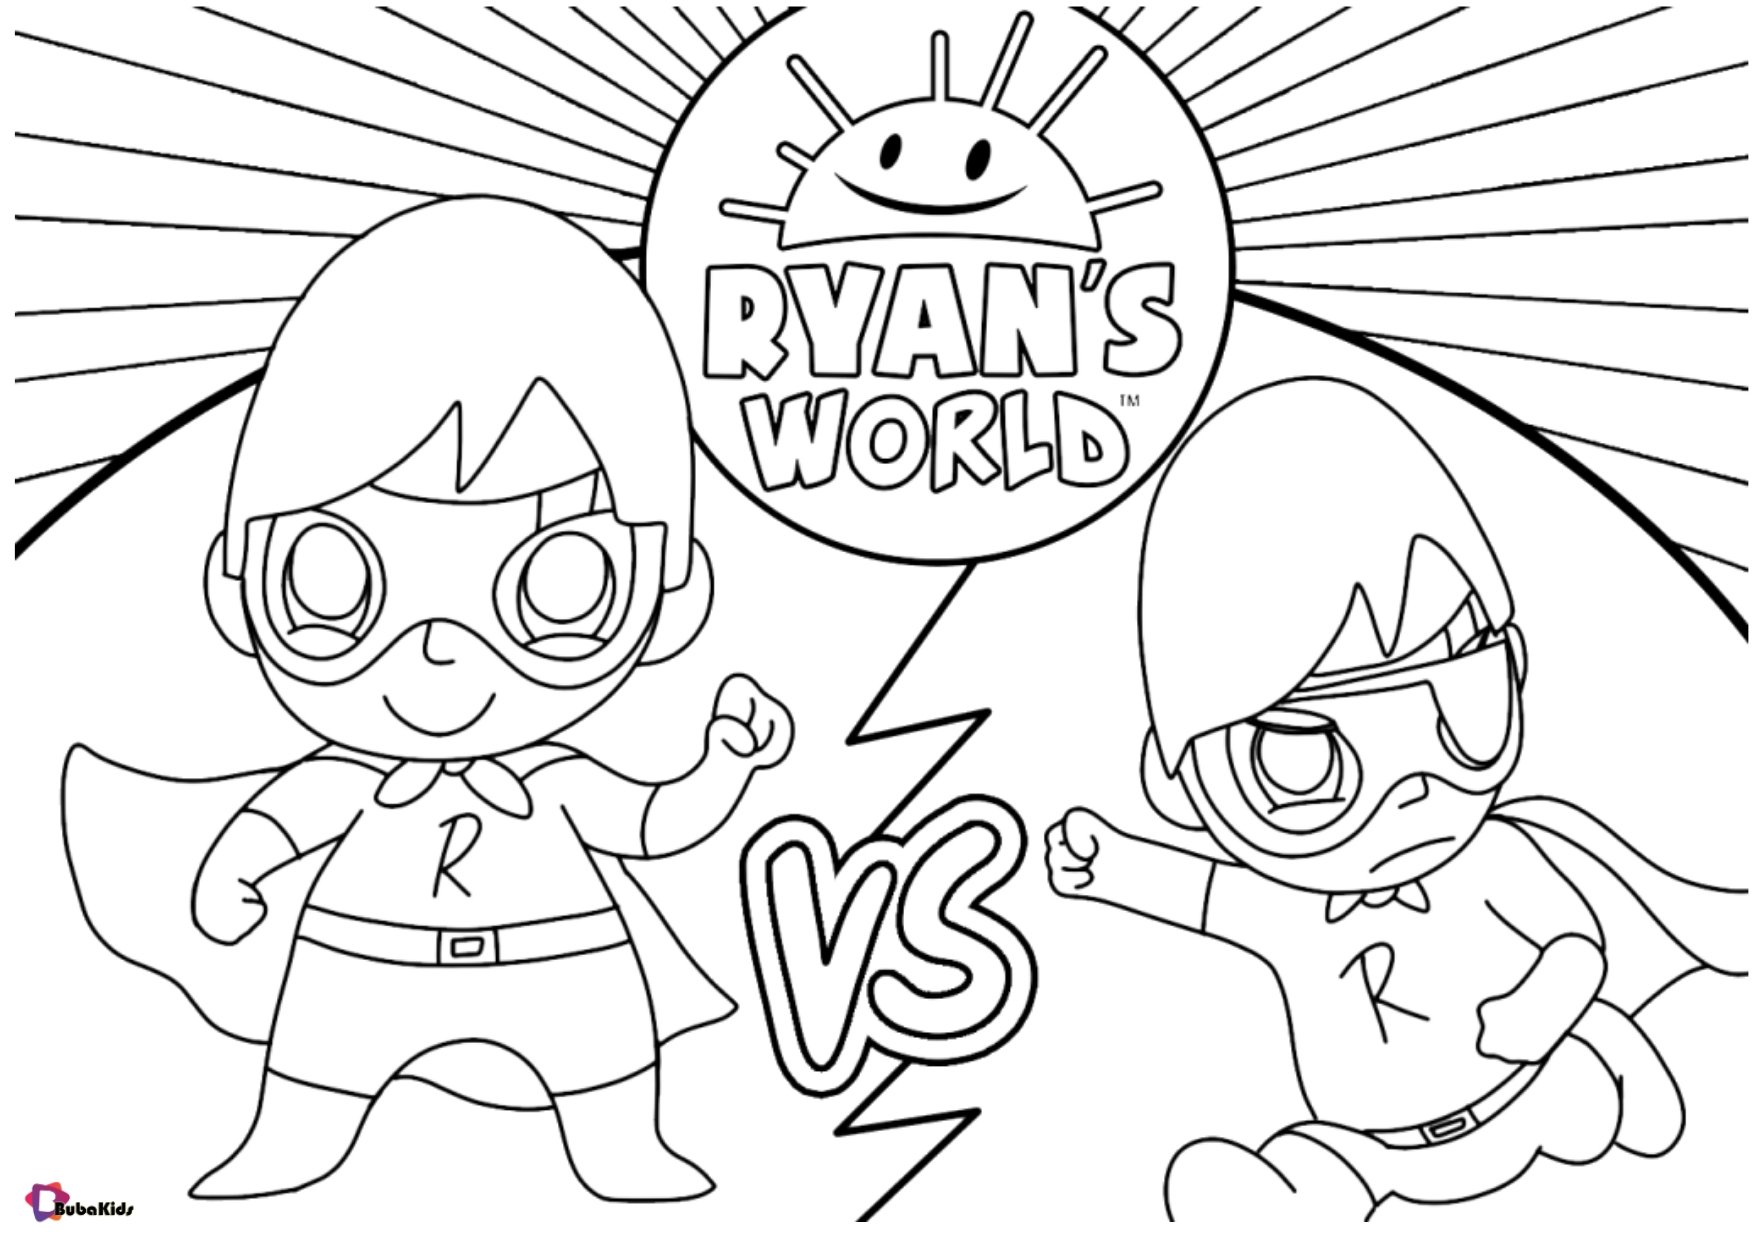 ryans world printable coloring pages ryans world free printable coloring pages free printable ryans pages world coloring printable